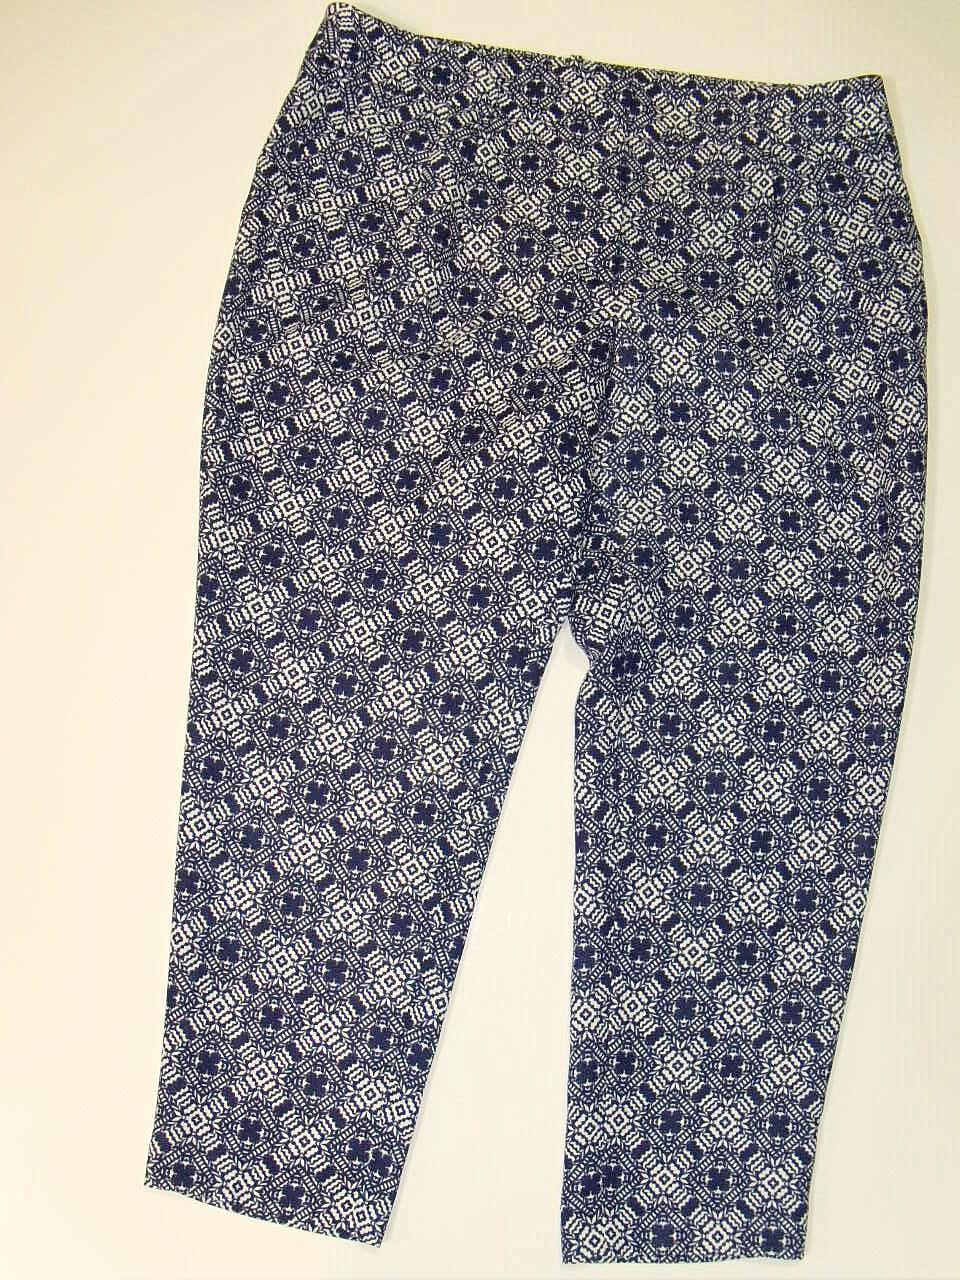 NWT J Crew Printed Crepe Trousers Skimmer Pants Sz 14 bluee White NEW Pleated